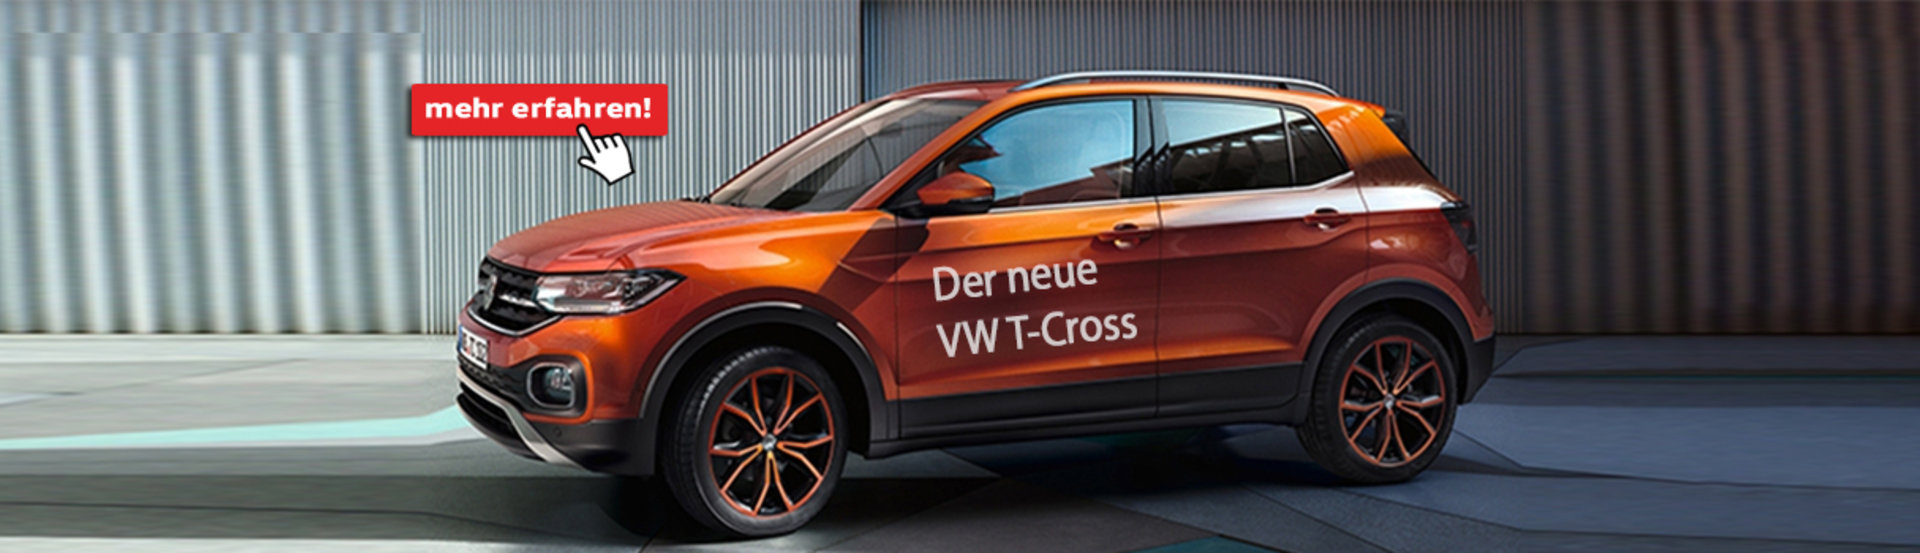 Der neue T-Cross in Energetic orange von Volkswagen